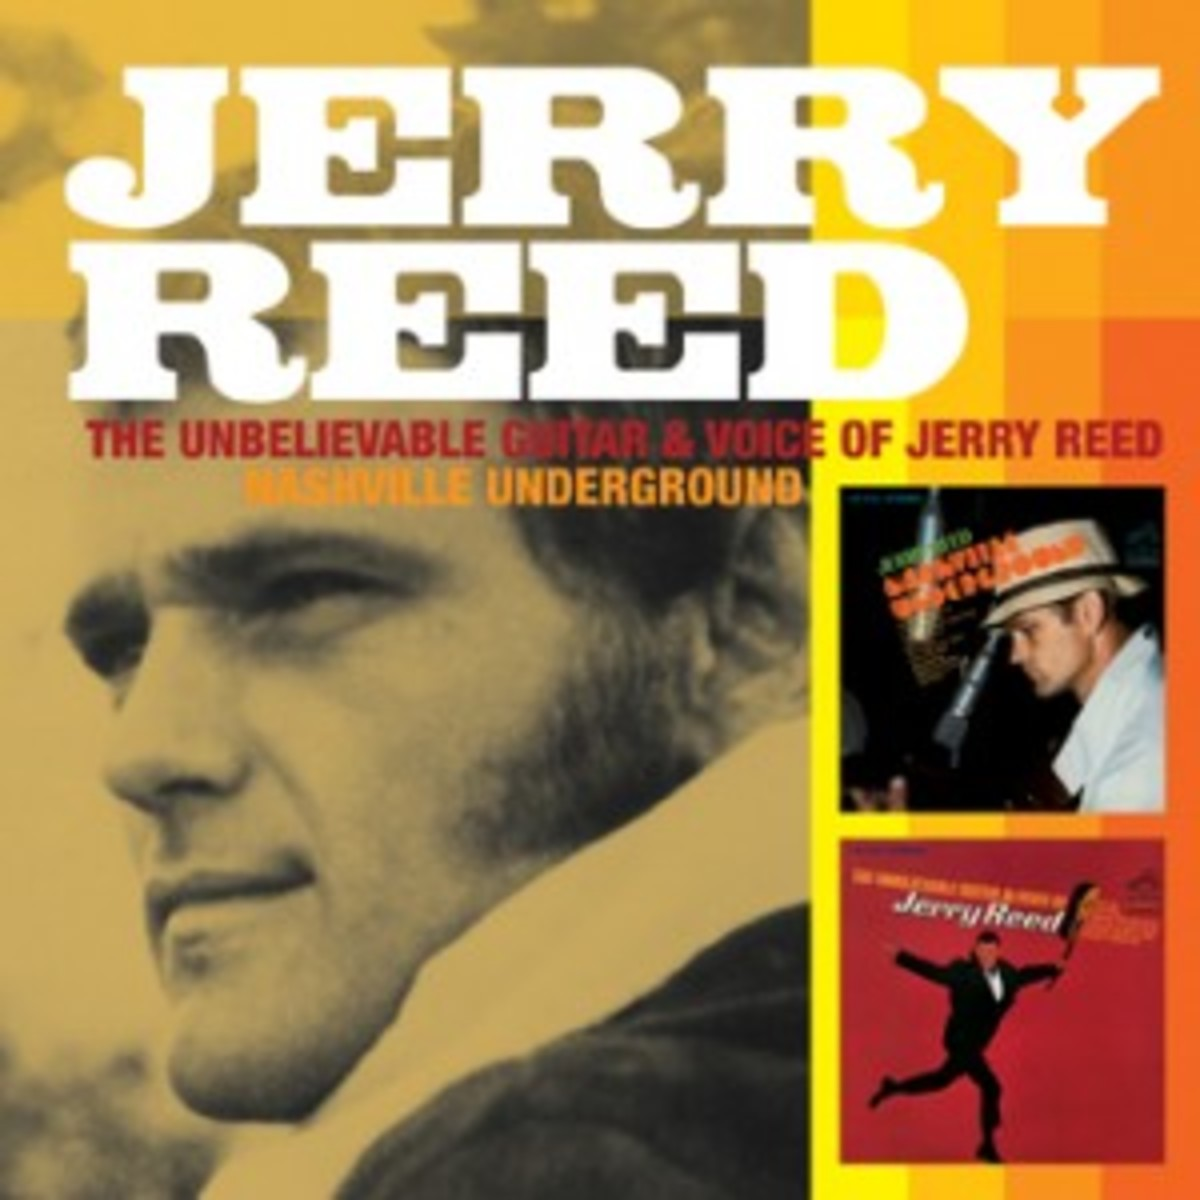 Nashville Underground and The Unbelievable Guitar and Voice of Jerry Reed